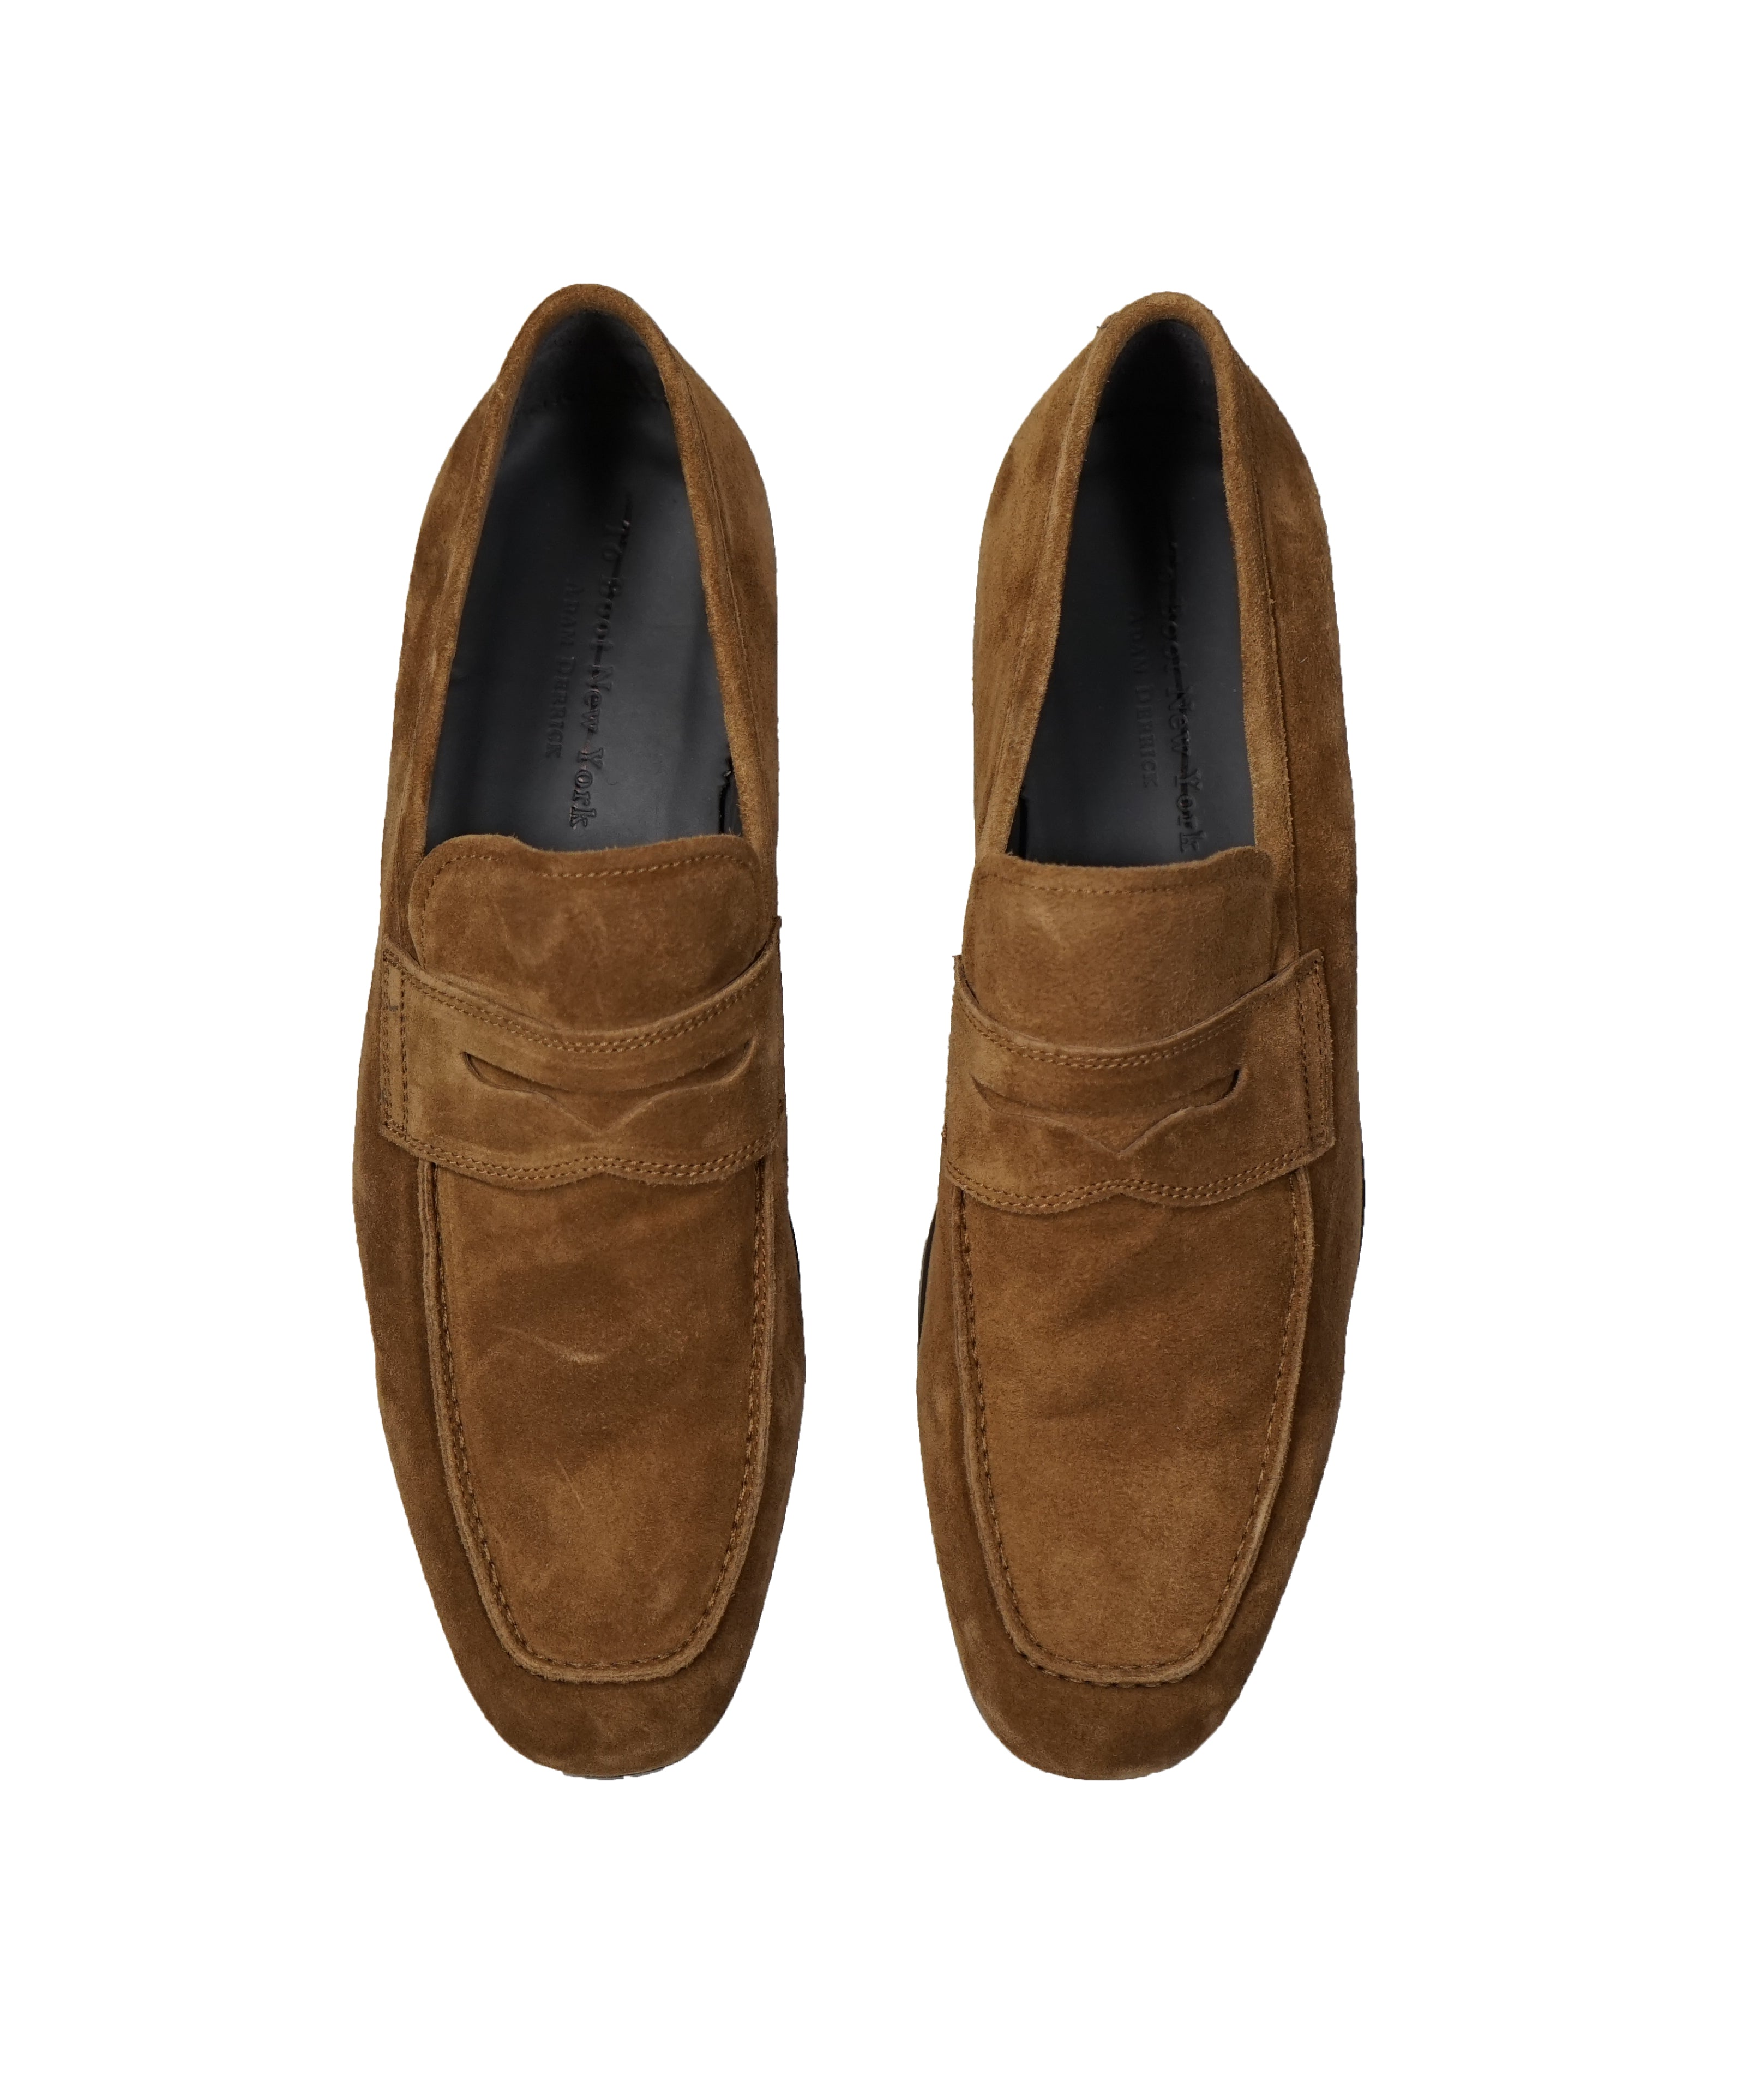 TO BOOT NEW YORK - Tobacco Brown Distressed Penny Loafers - 11